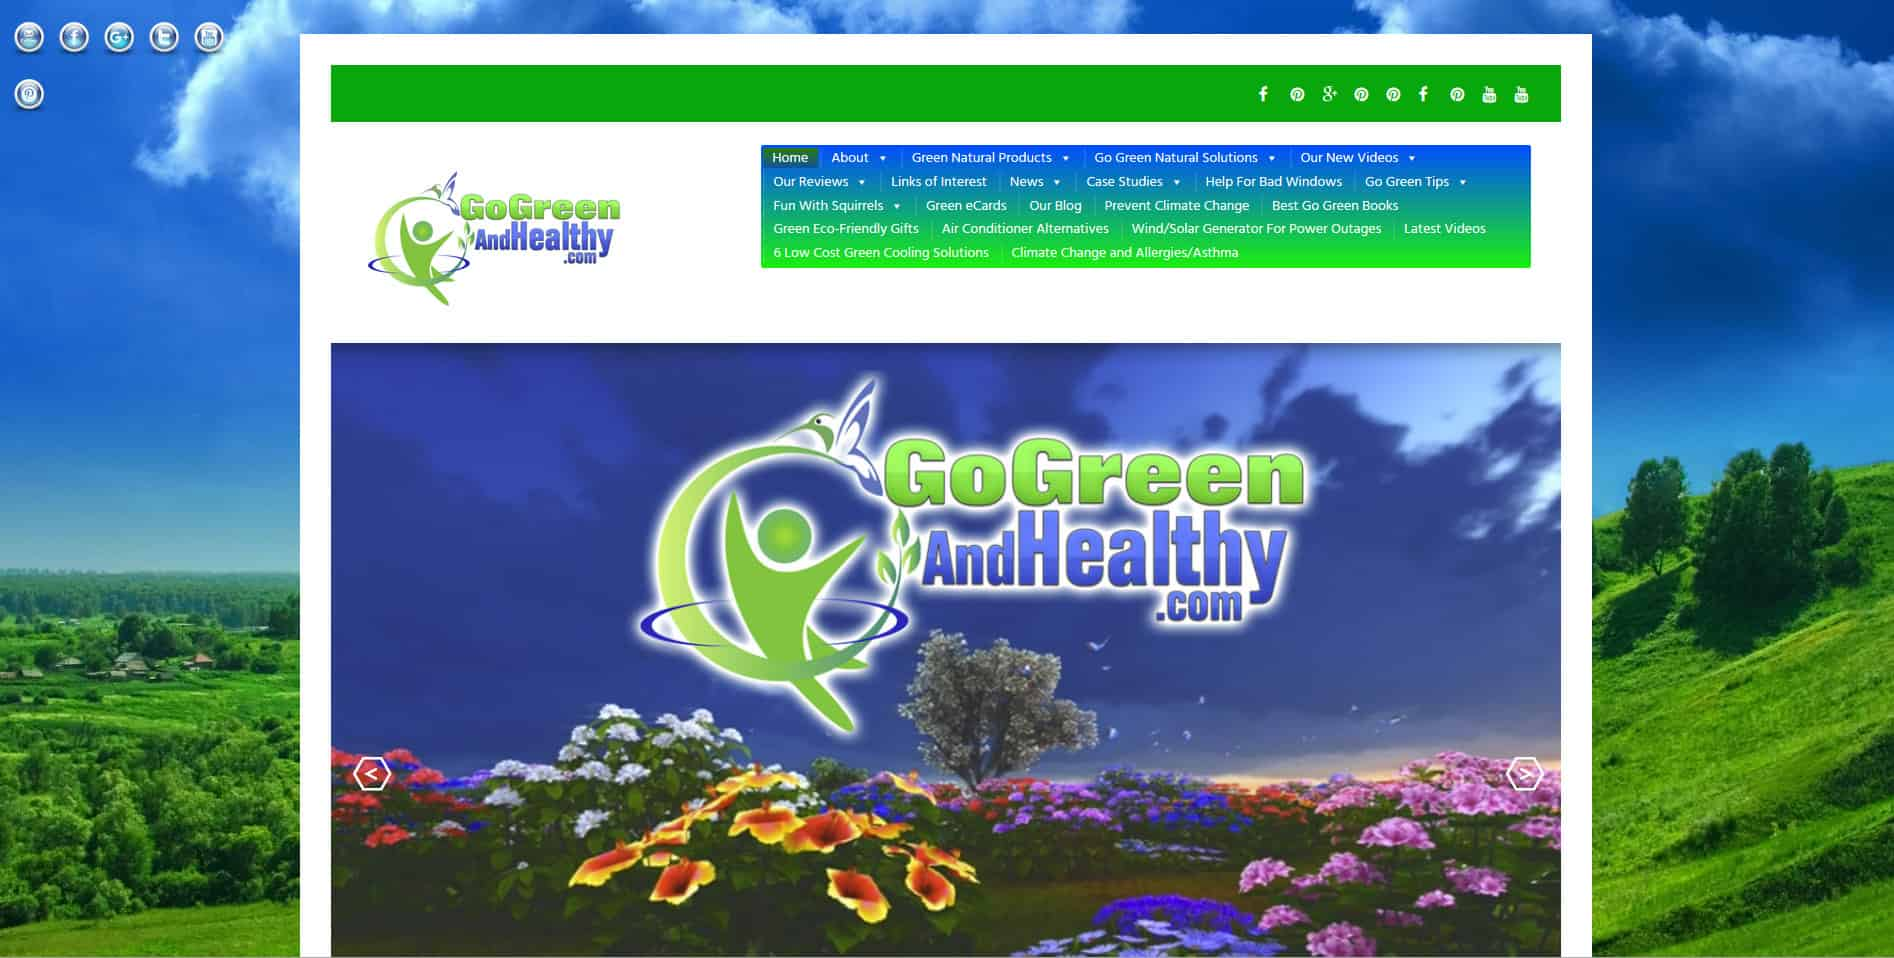 Parallels theme applied to go green site